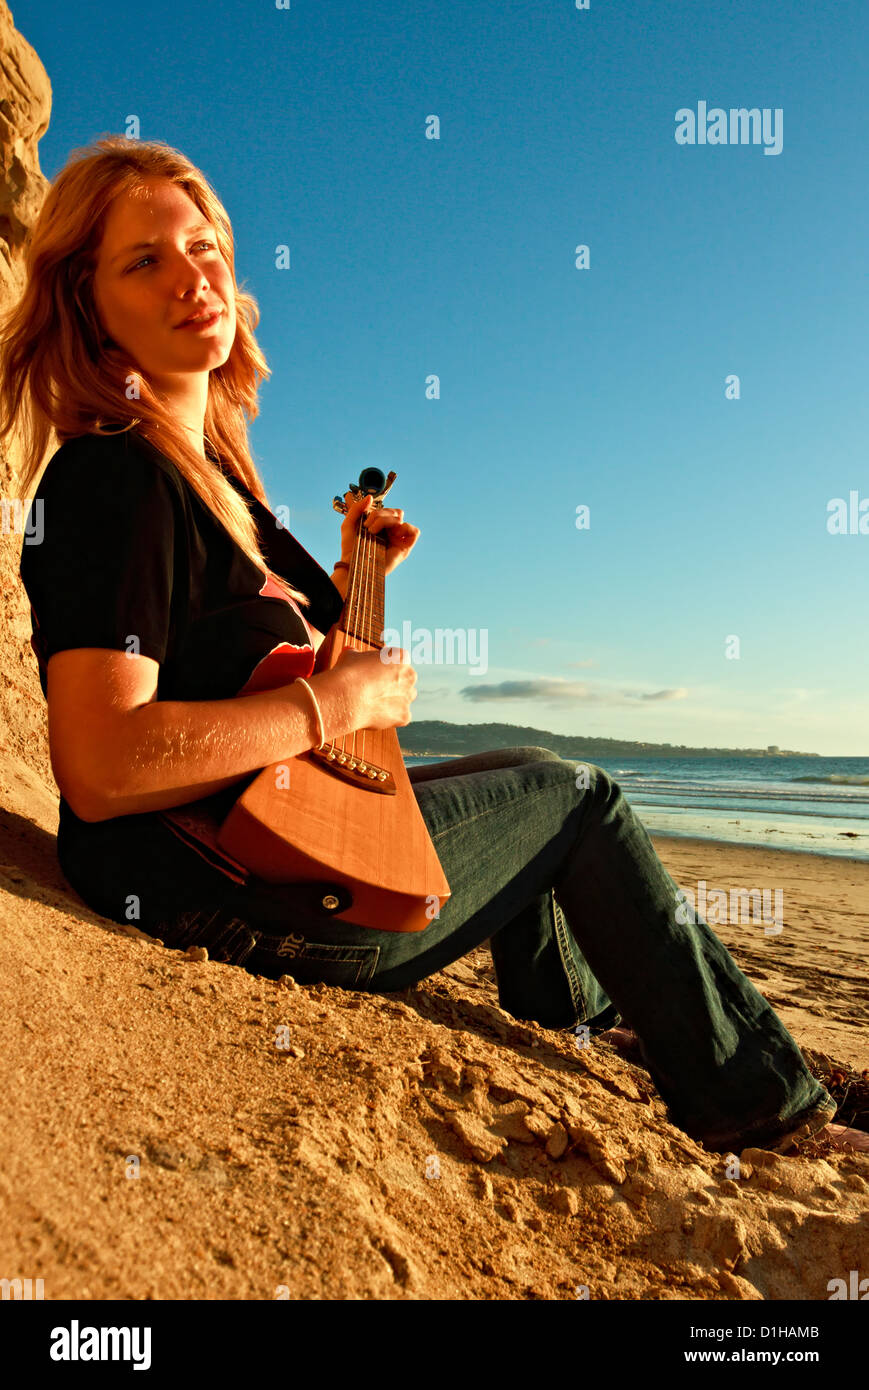 A beautiful young lady is captured, at the beach, while playing guitar. - Stock Image